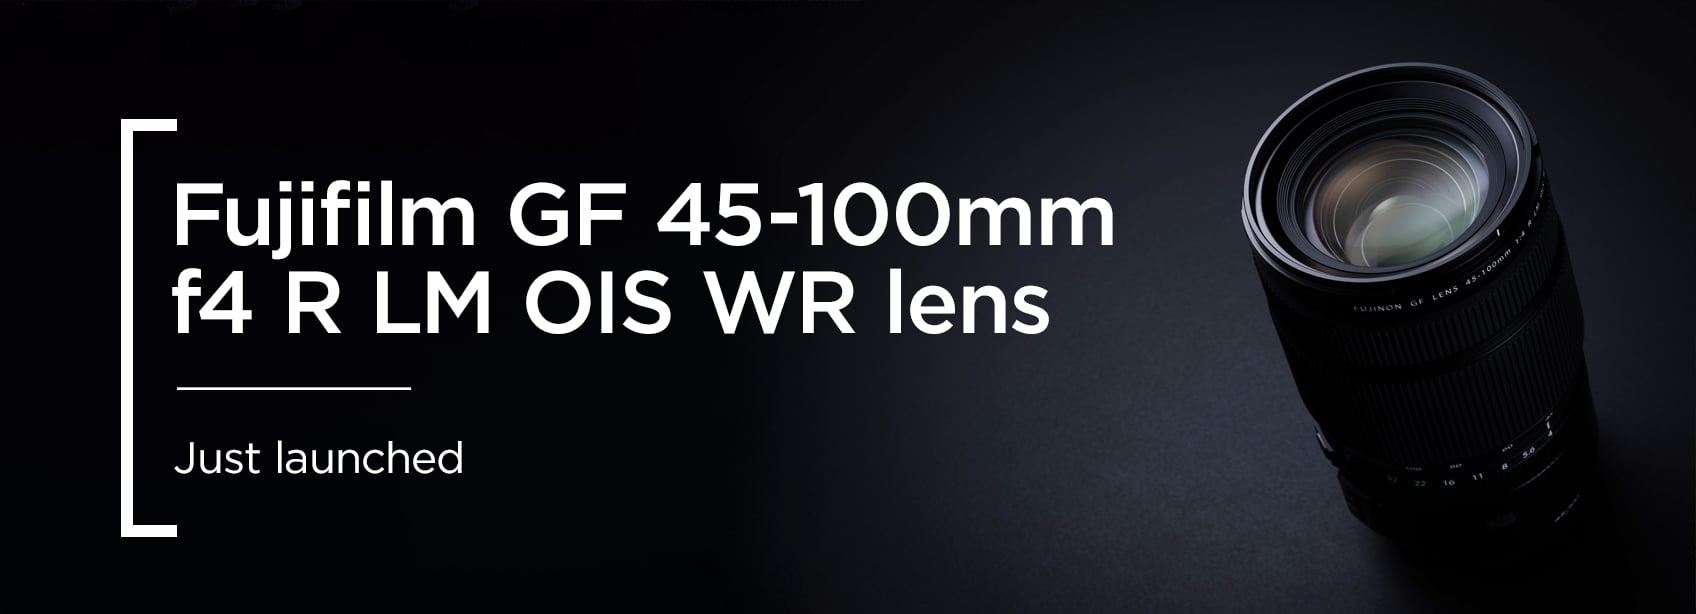 Fujifilm GF 45-100mm f4 R LM OIS WR Lens - Just launched